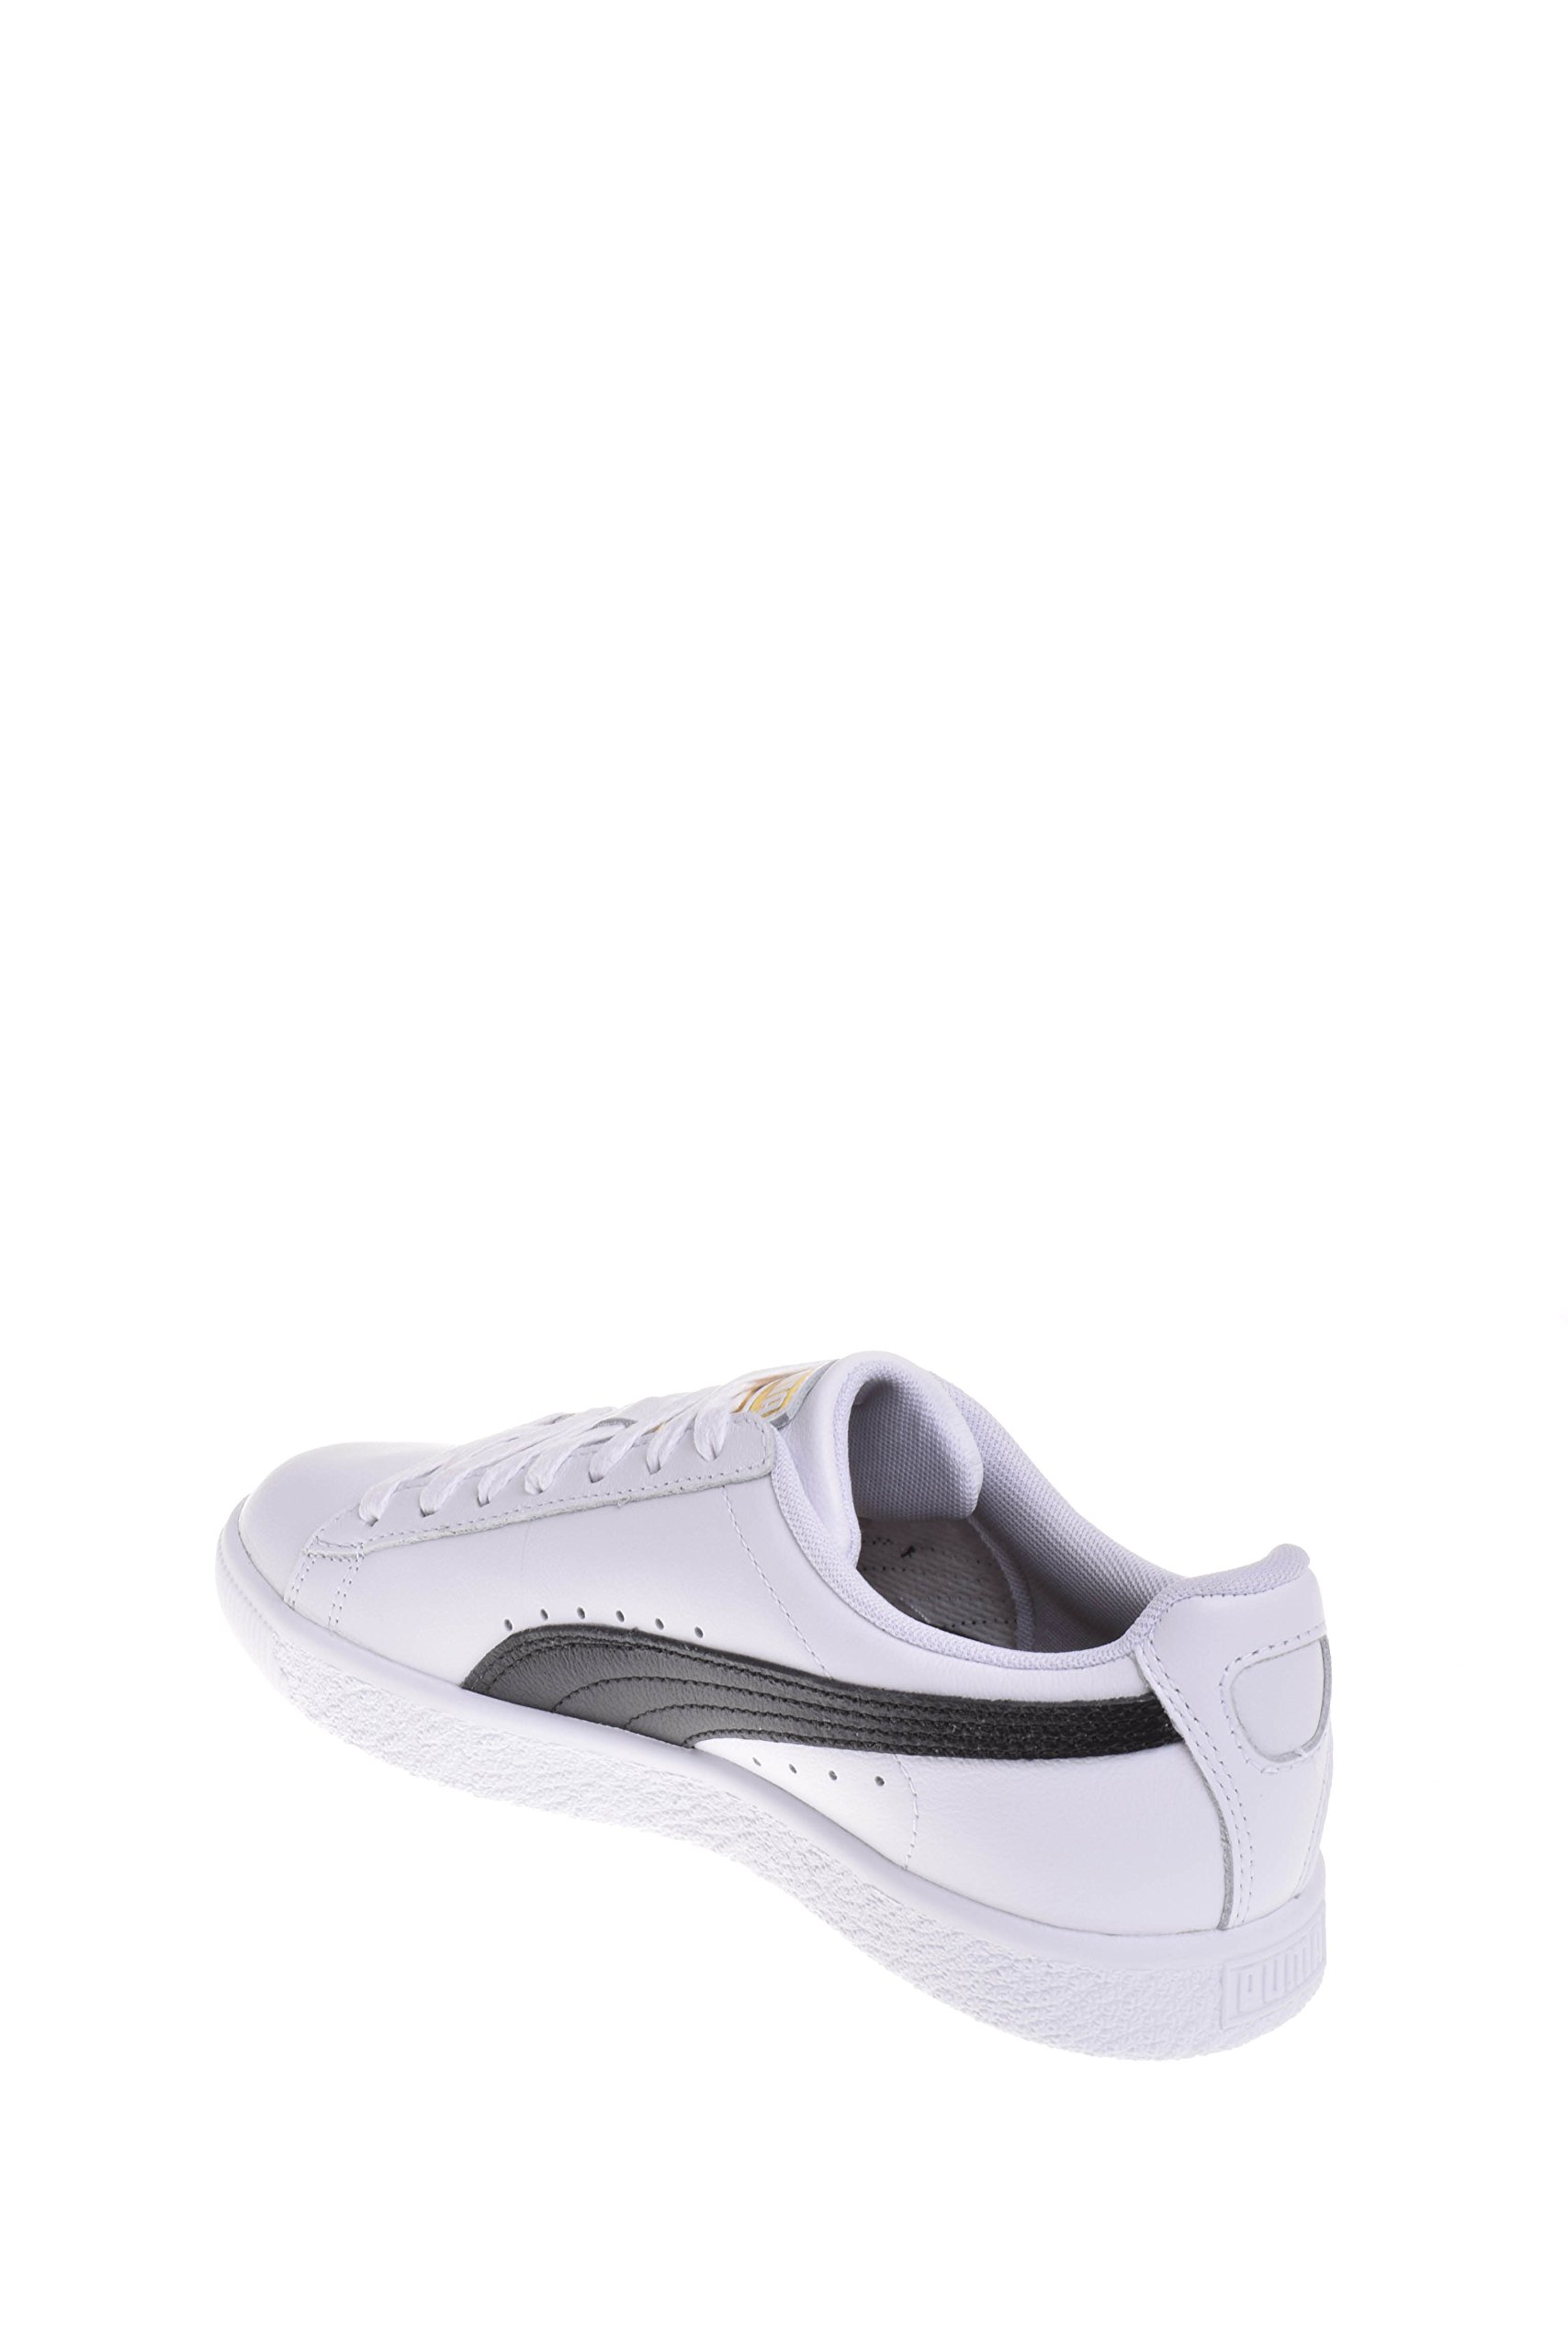 new concept 55c60 d8680 PUMA Women's Clyde Core L Foil Puma White/Puma Black/Puma Team Gold 10 B US  B (M)